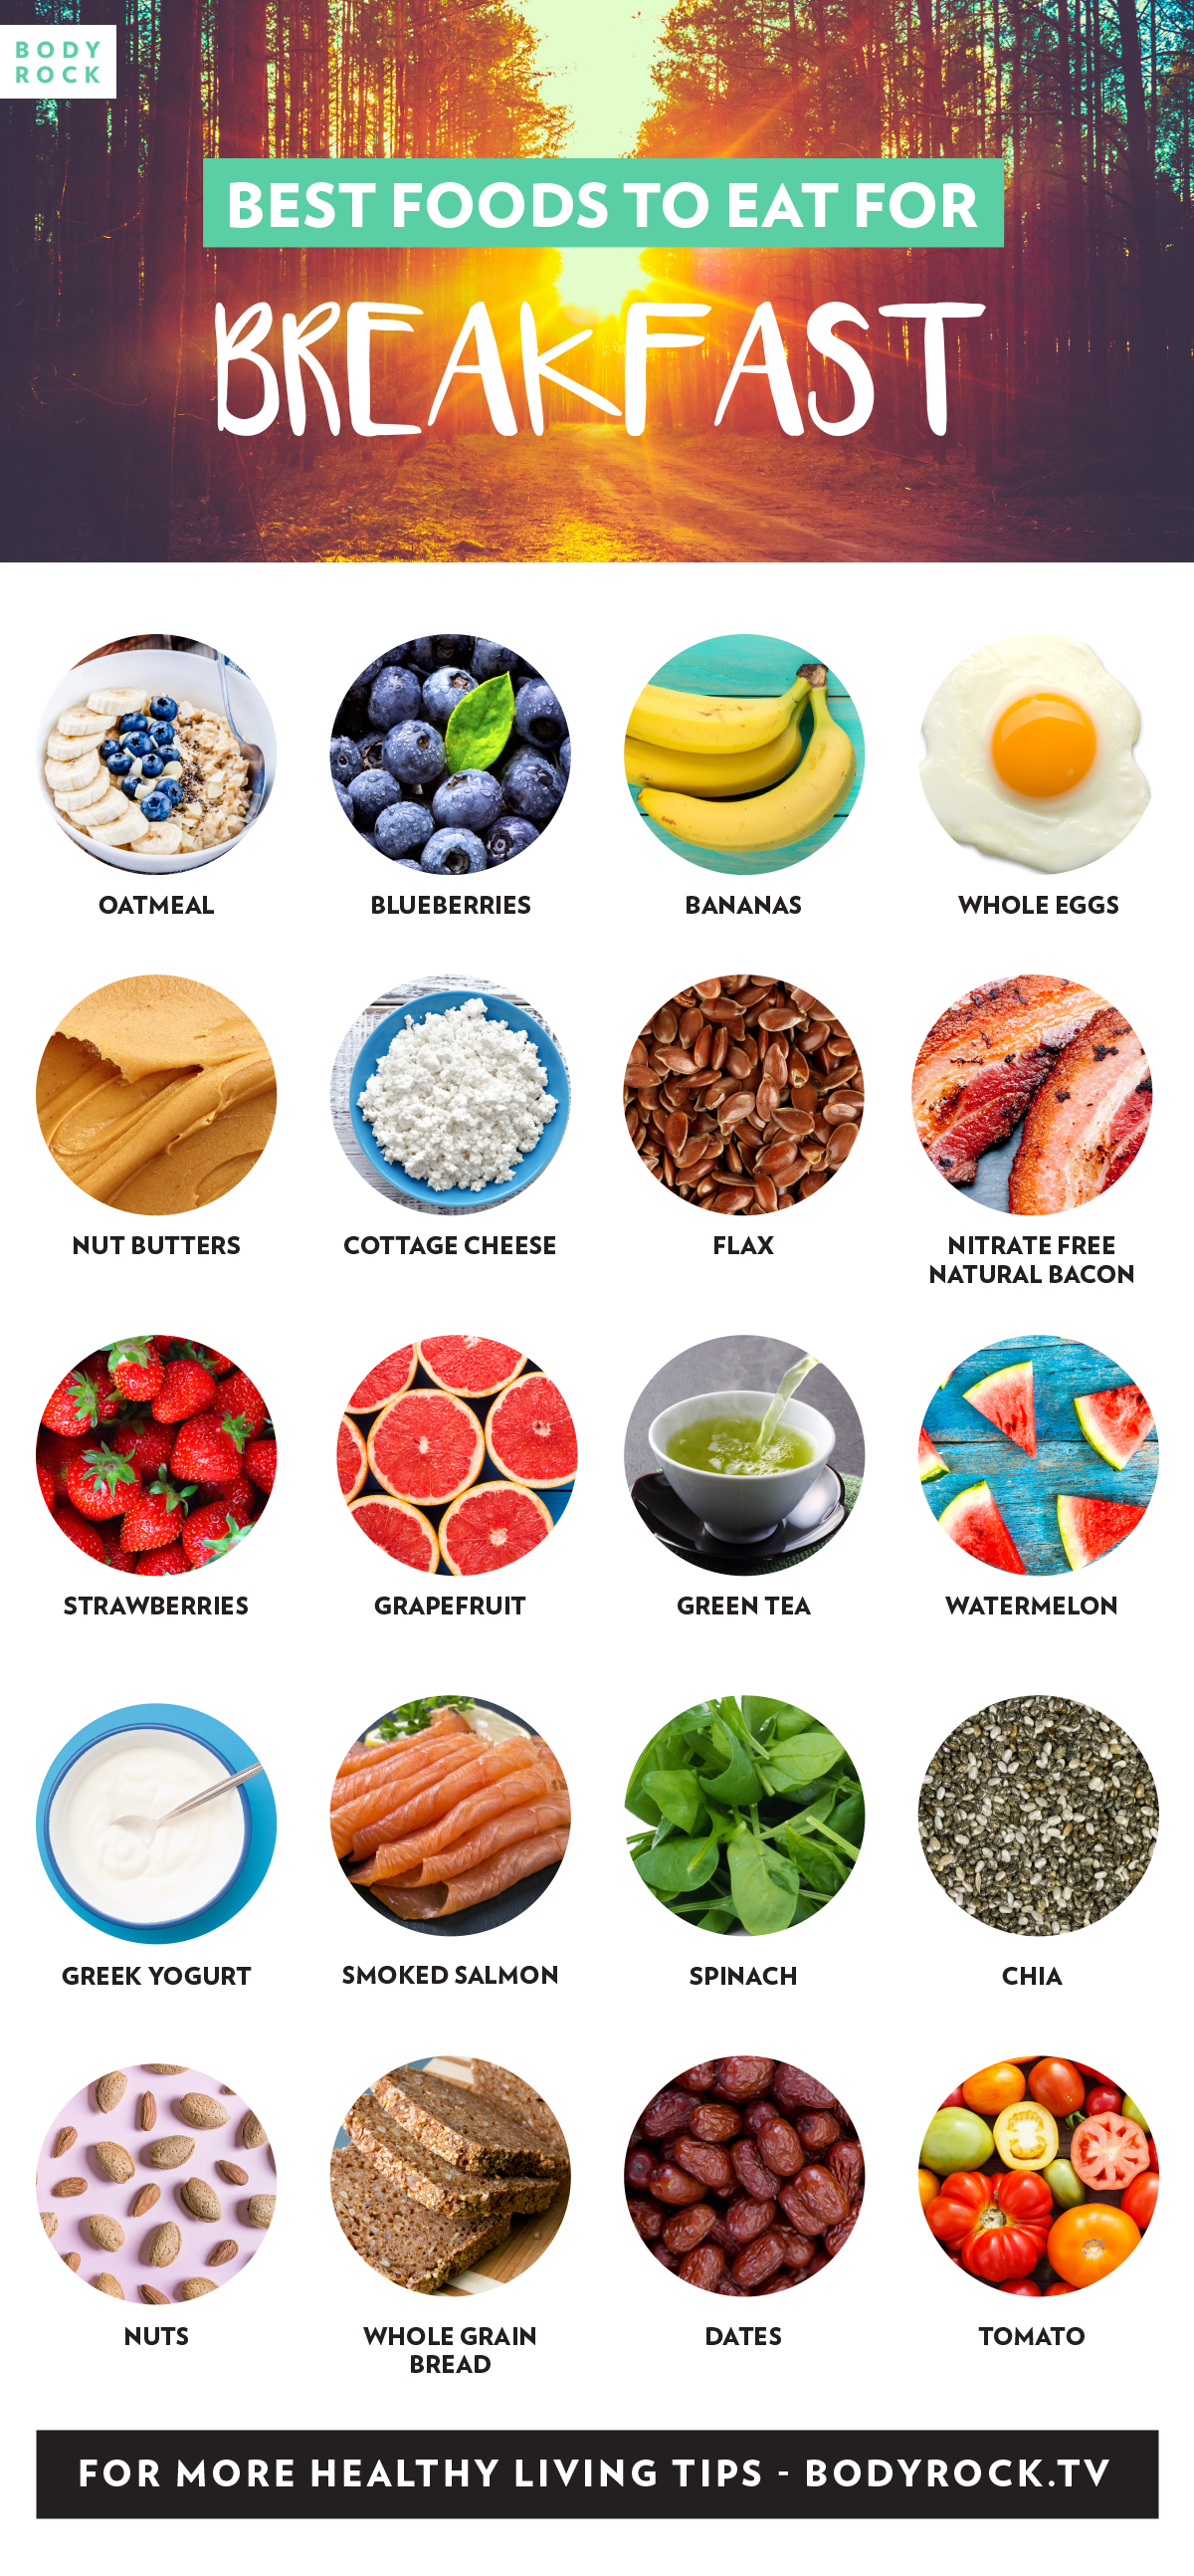 Best foods to eat for good health - Healthy Dinners In 40 Minutes Or Less Food Network